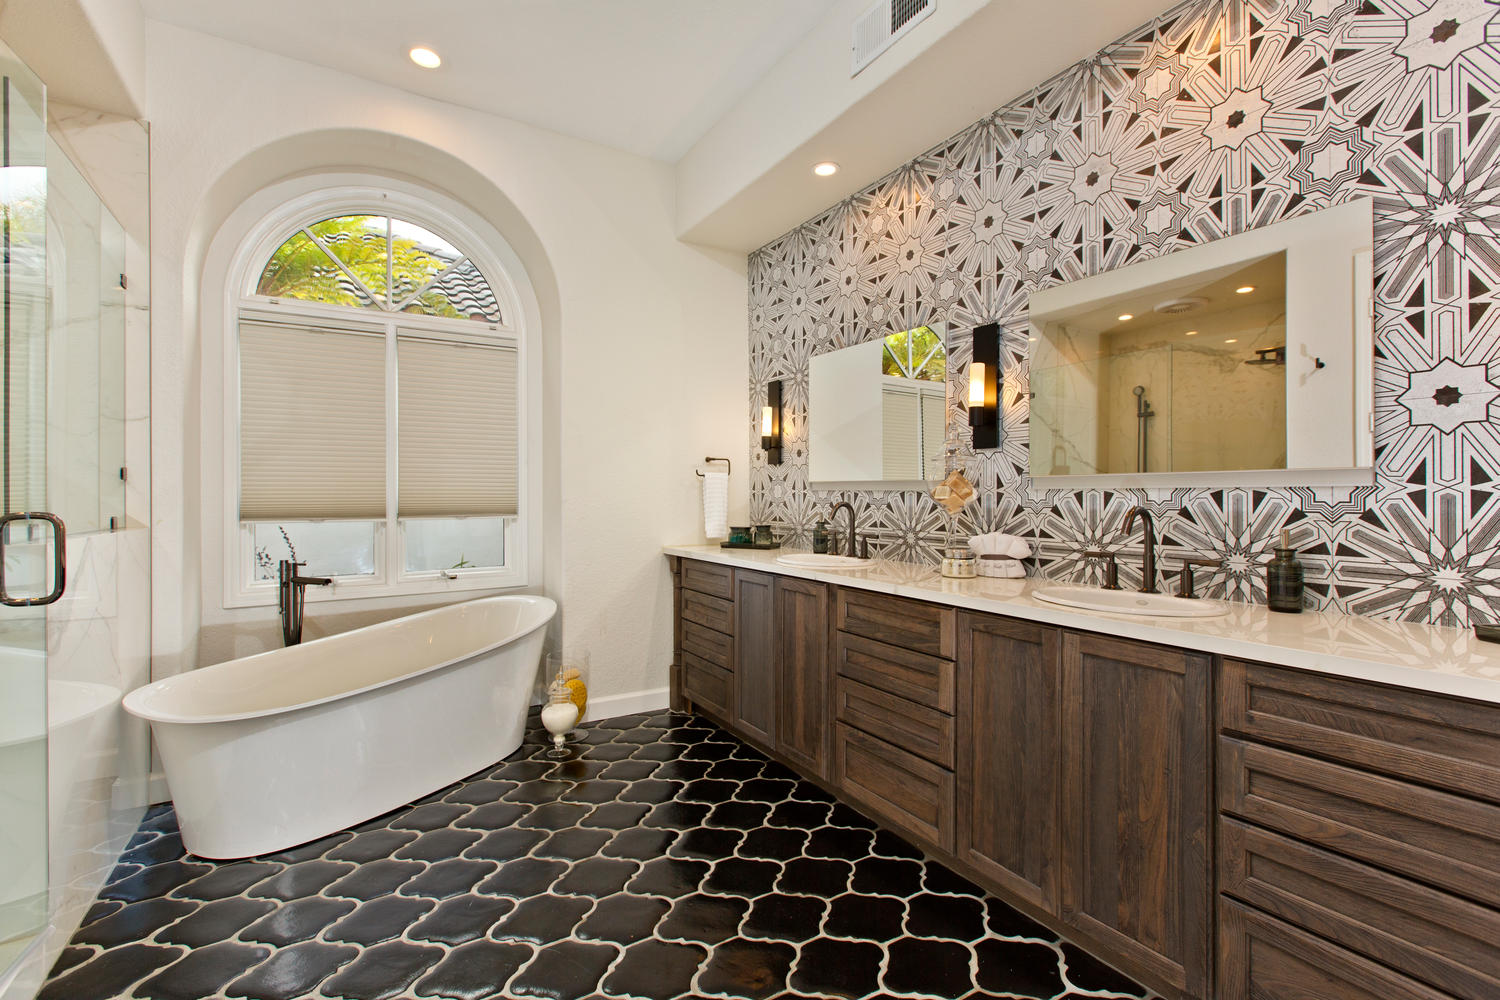 the picture you have in mind of your newly remodeled bath is going to be completely different once it comes to life. you can use all of the materials, but it will never be exactly the same due to structural constraints. even with a full gut remodel, there are places where plumbing can and cannot go, doorway considerations, ceiling heights that make that rainhead unfeasible; all sorts of unforeseen roadblocks.